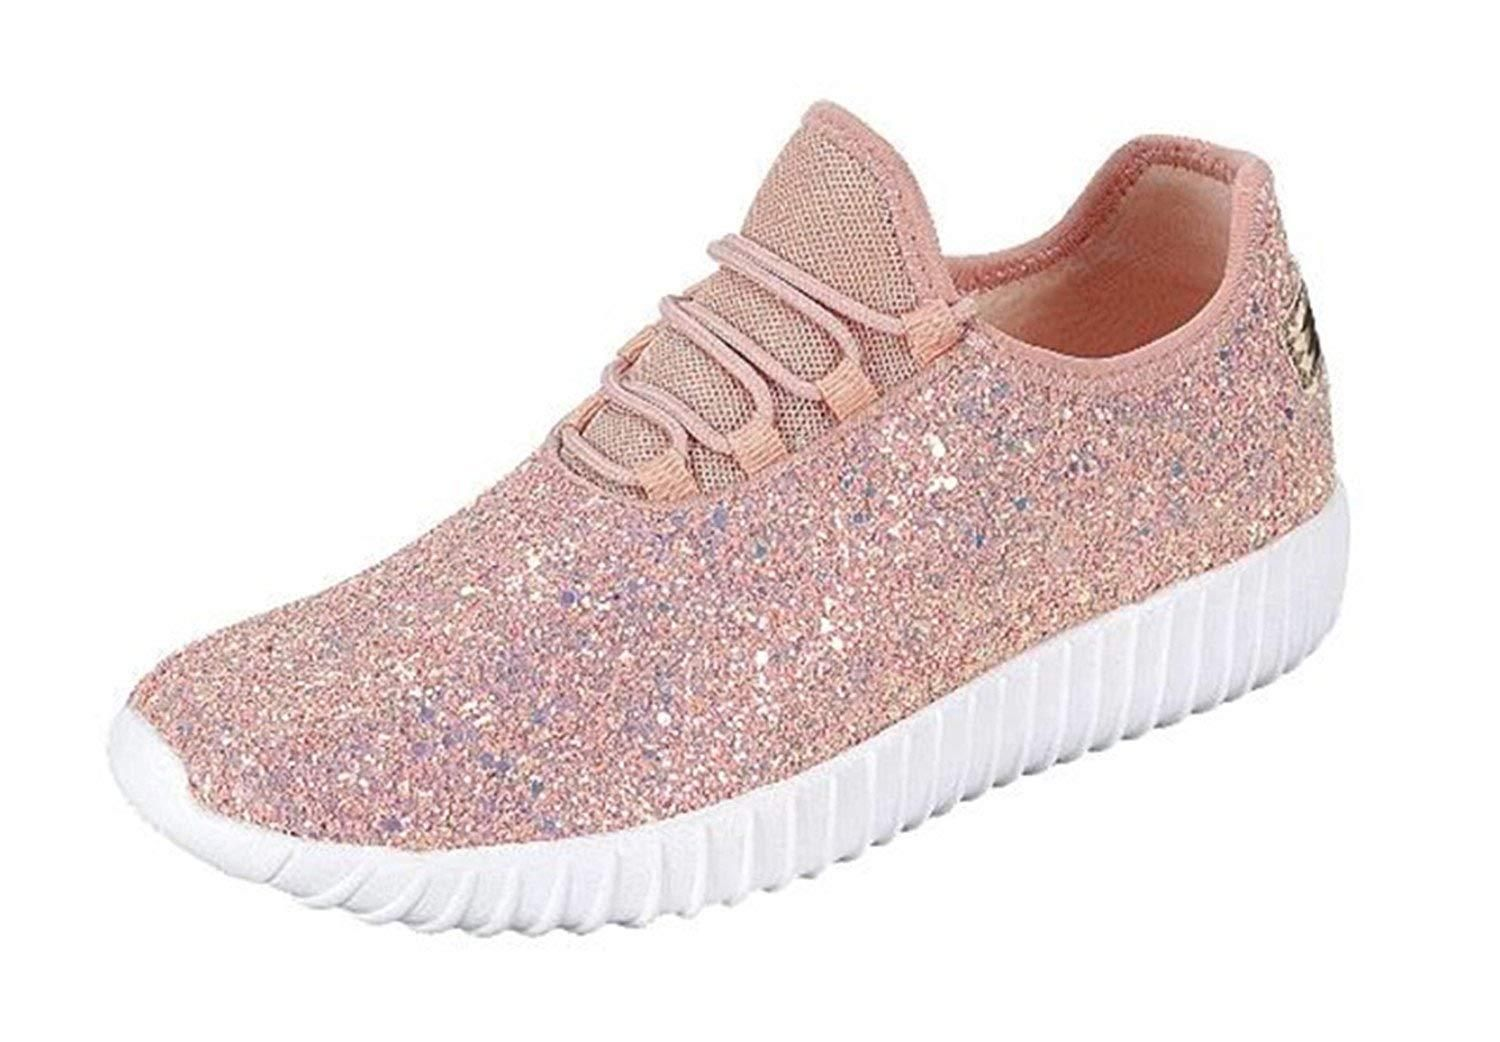 b85c1c16c81e SF Forever Link Remy-18 Women's Jogger Sneaker-Lightweight Glitter Quilted  Lace Up Shoes New